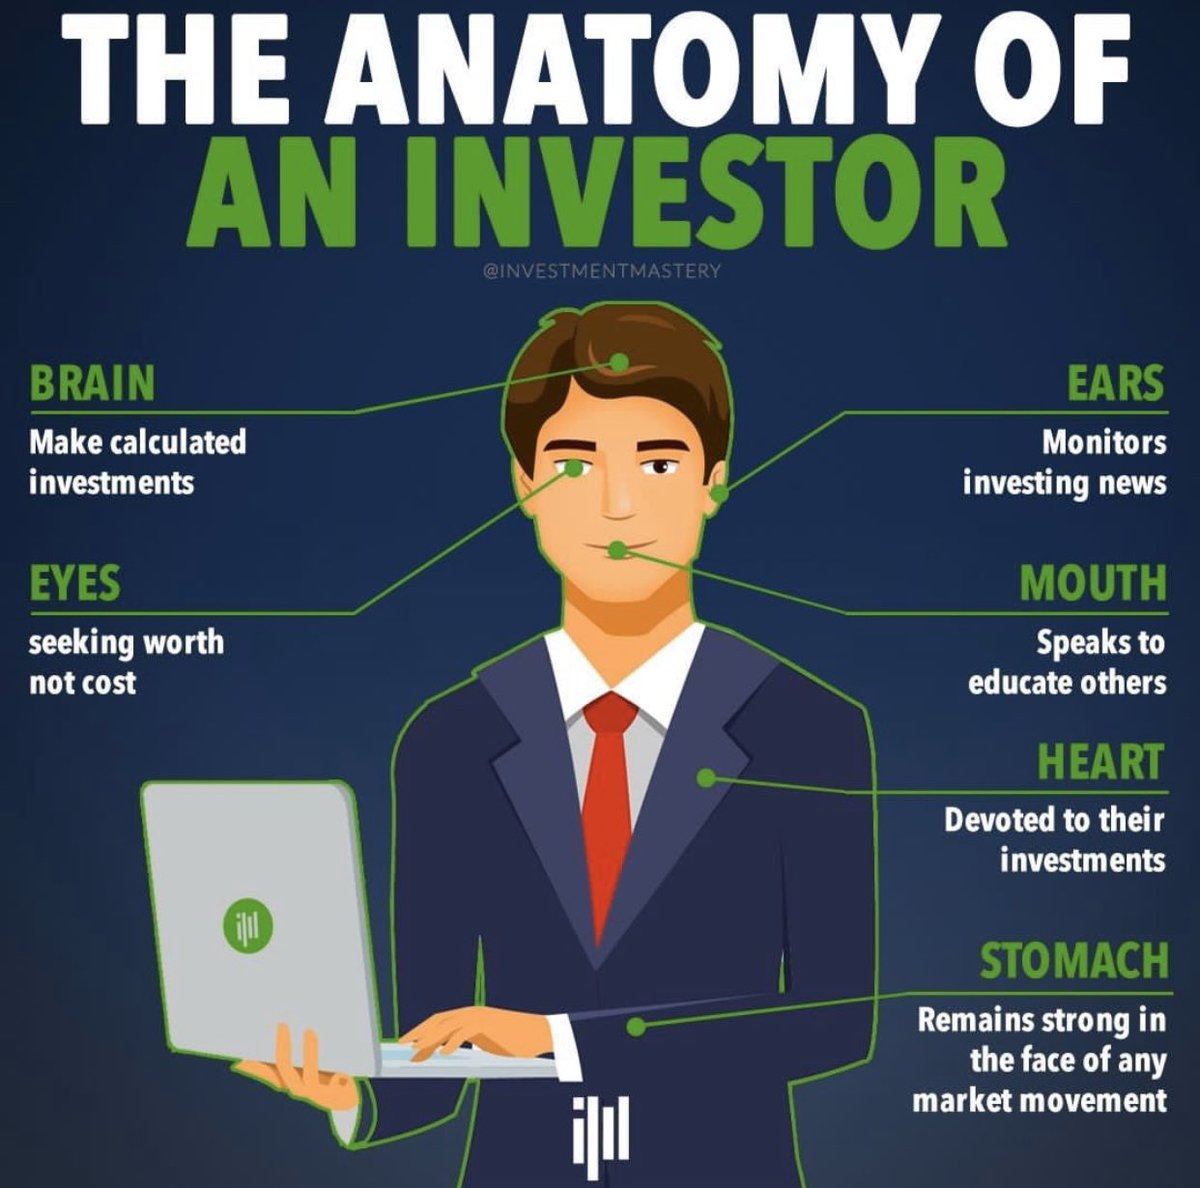 Investors are more than a person who just know how. Their whole body composition serves them, their entire anatomy adapted to withstand everything that investing entails. #investors #success #millionairemindset #Entrepreneur #Concours #wealthcreators #moneymanagement #affaire #rt https://t.co/mbaybsHH7C